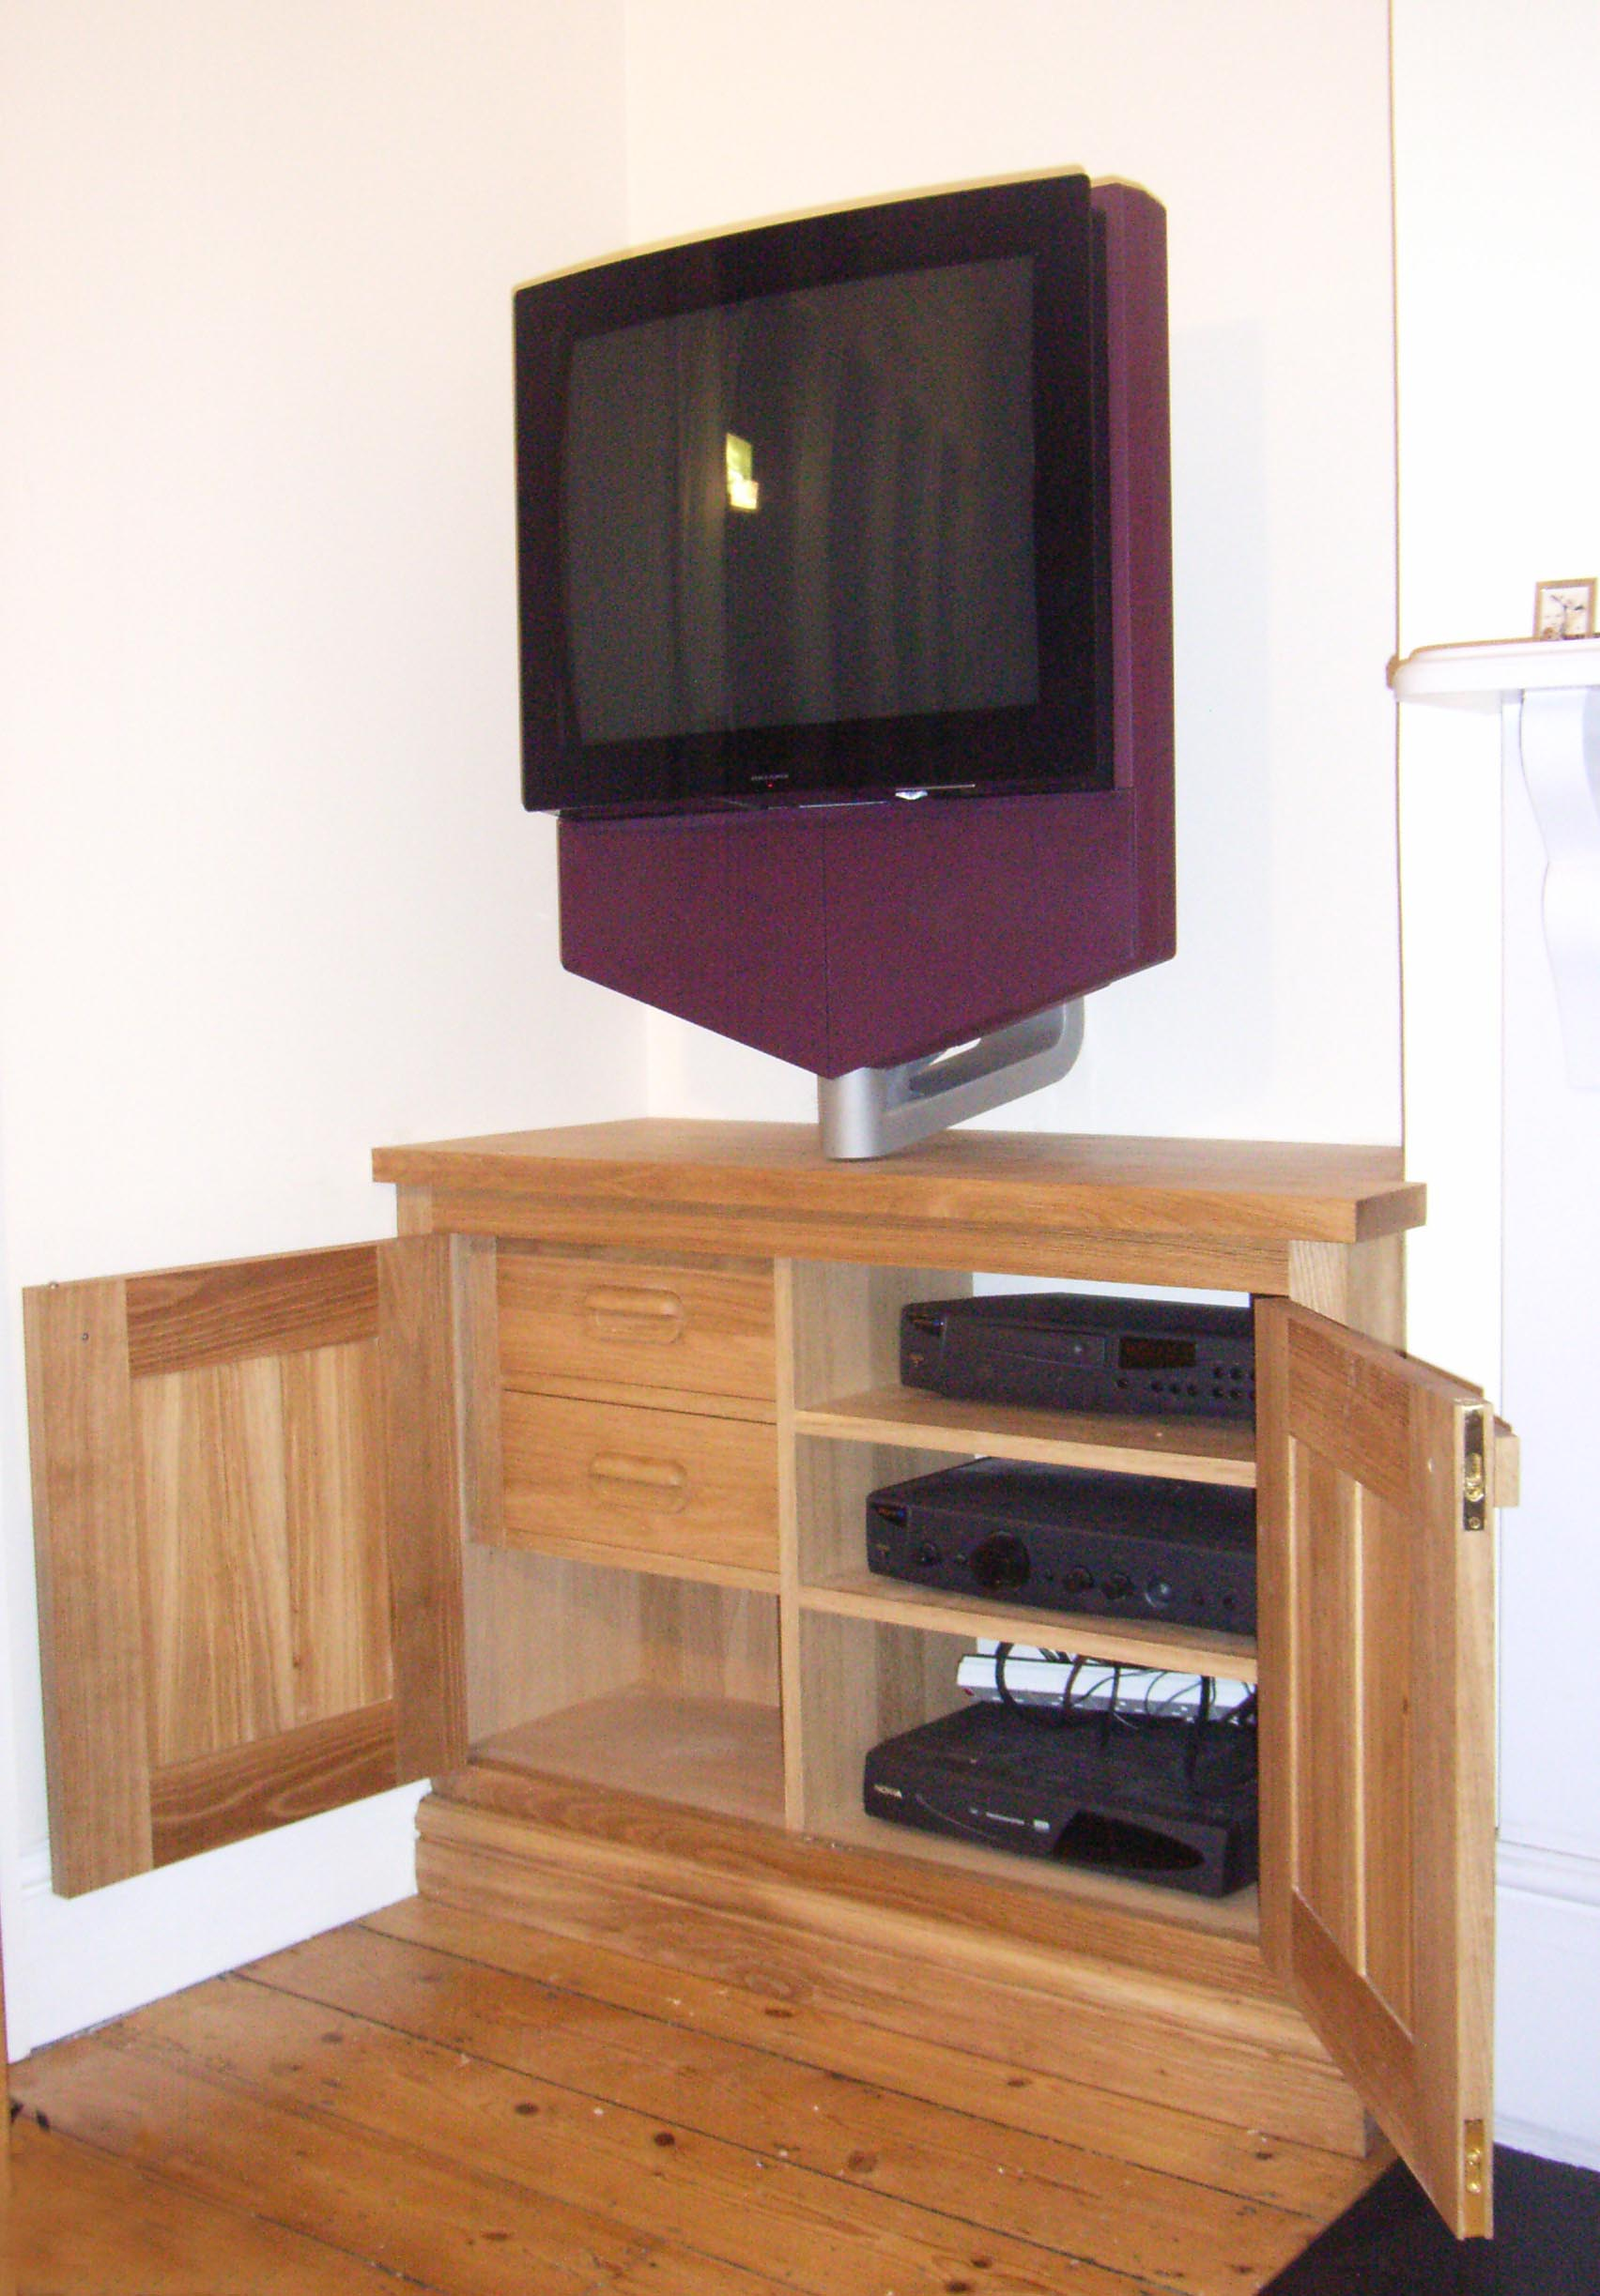 Bespoke Alcove Oak TV Cupboard